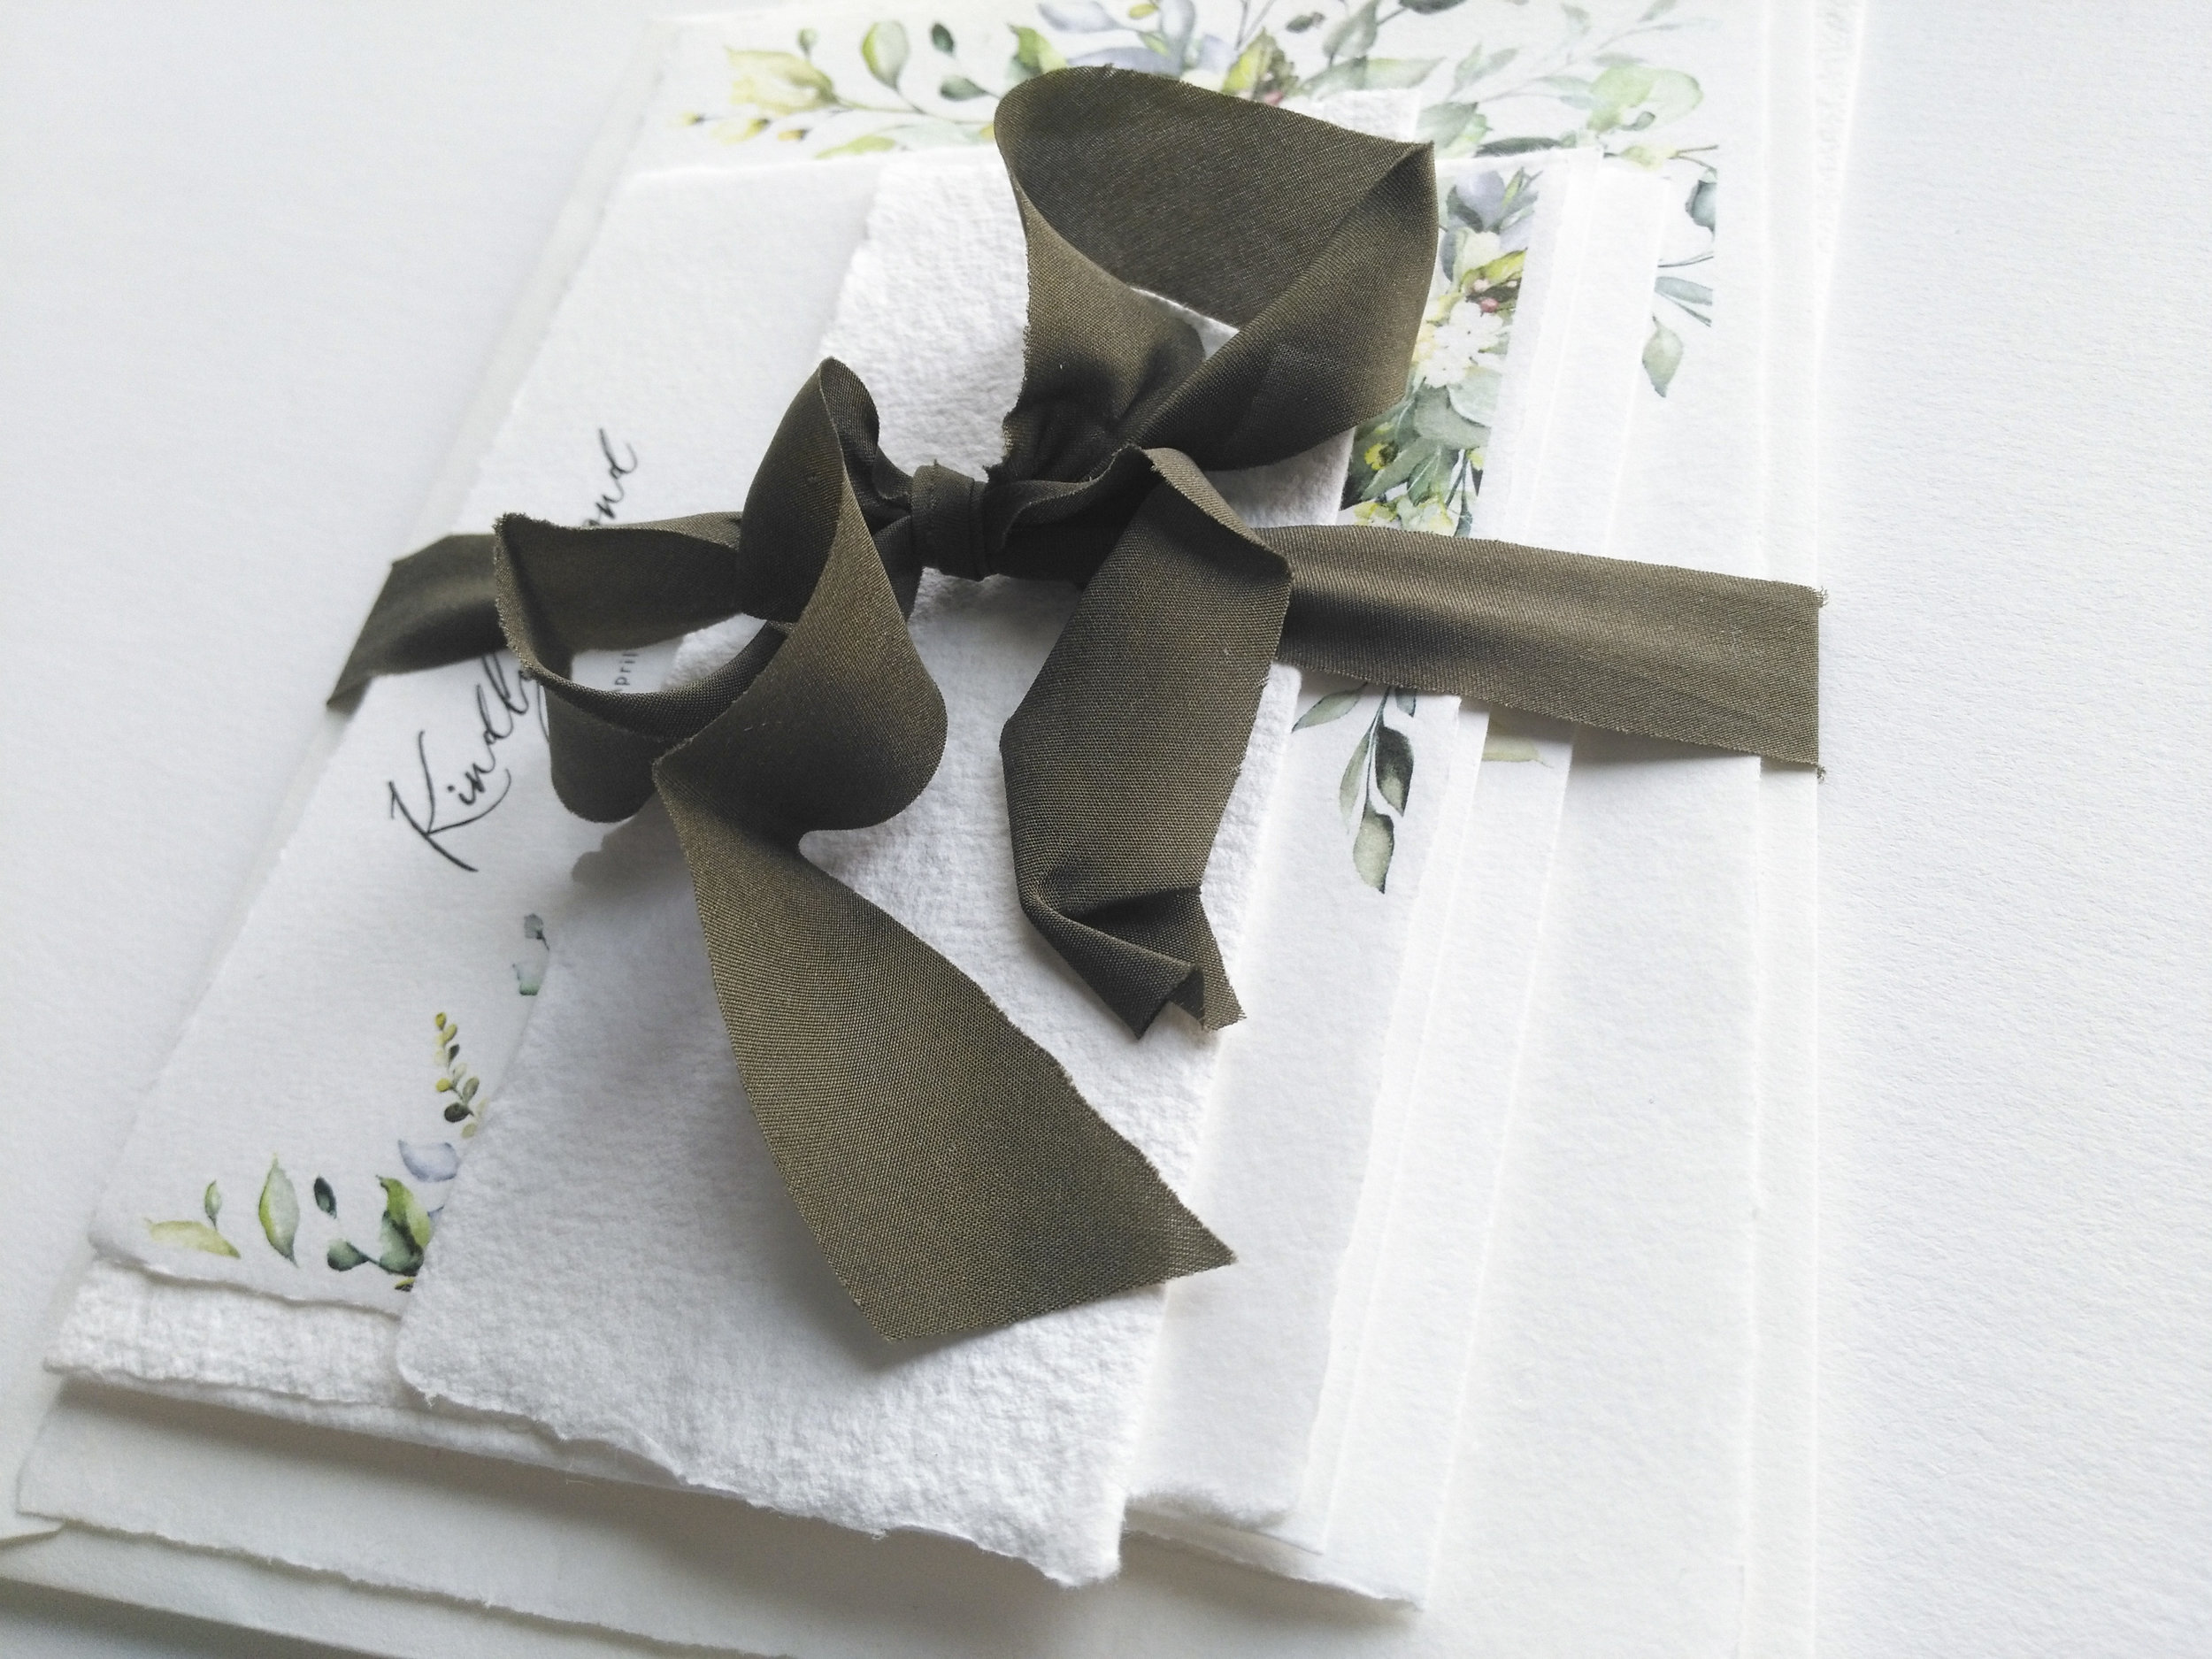 This picture is showing St. Gilles handmade paper, St. Gilles handmade envelopes and plant dyed silk ribbon. Click to enlarge.